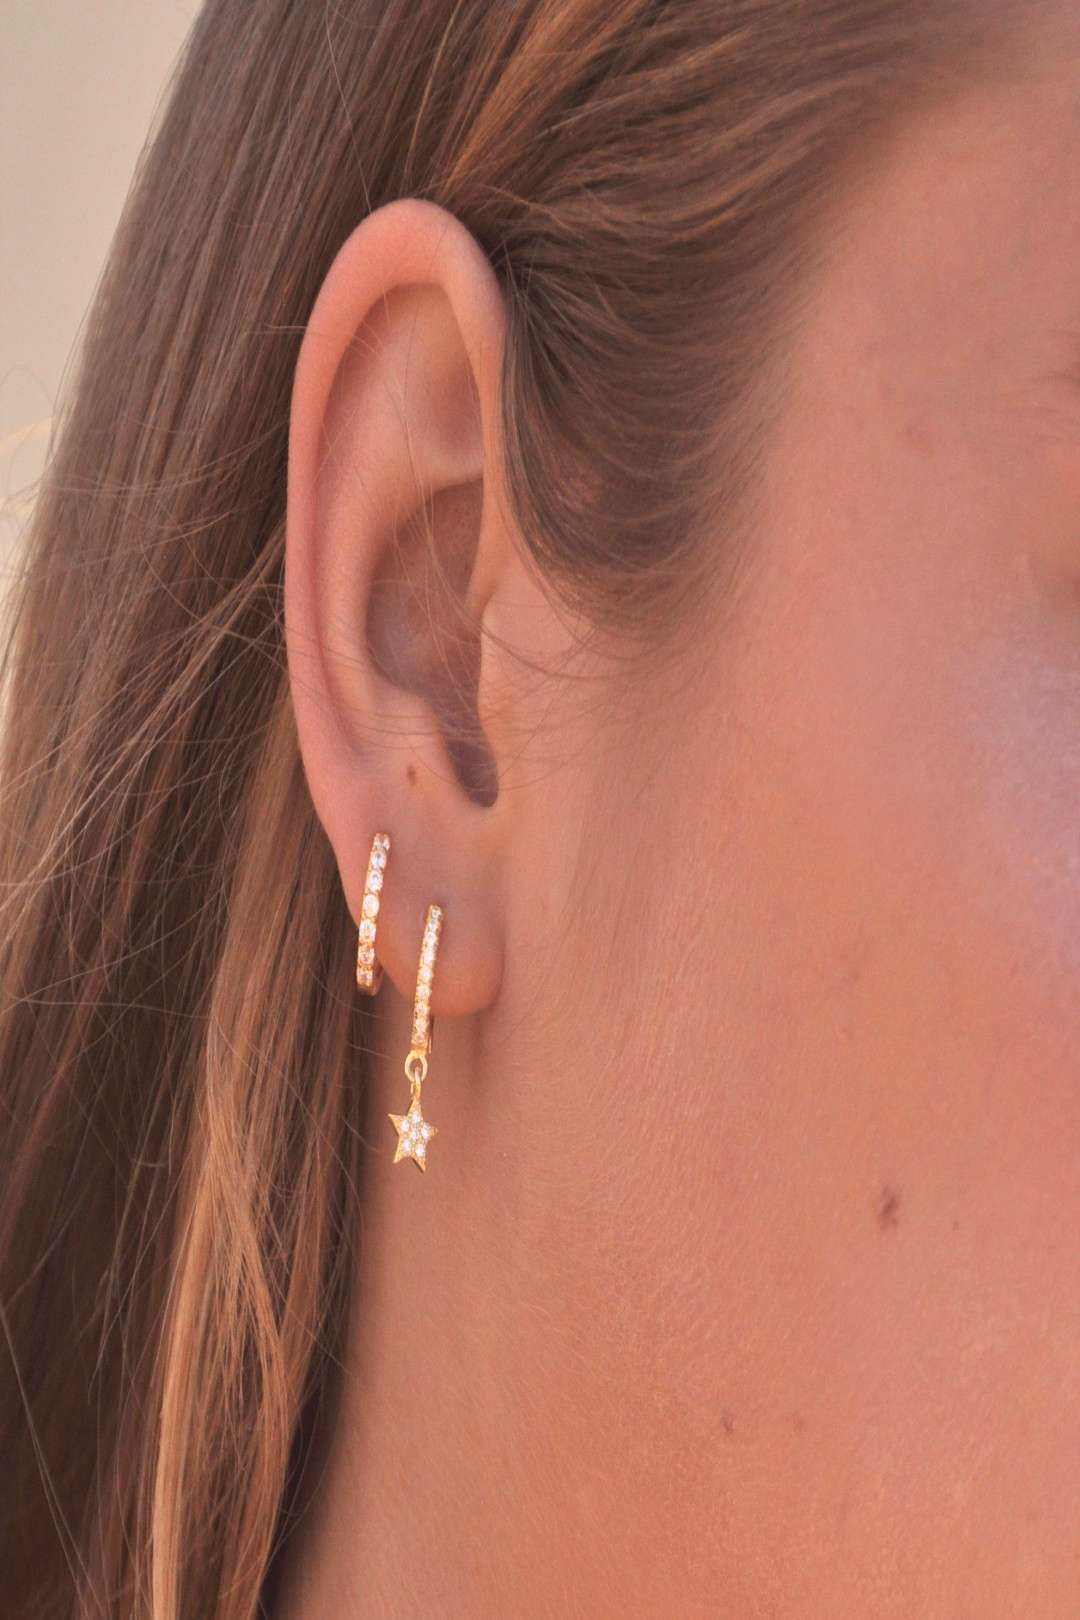 STAR PAVE HUGGIE EARRINGS – V THE LABEL Jewellery